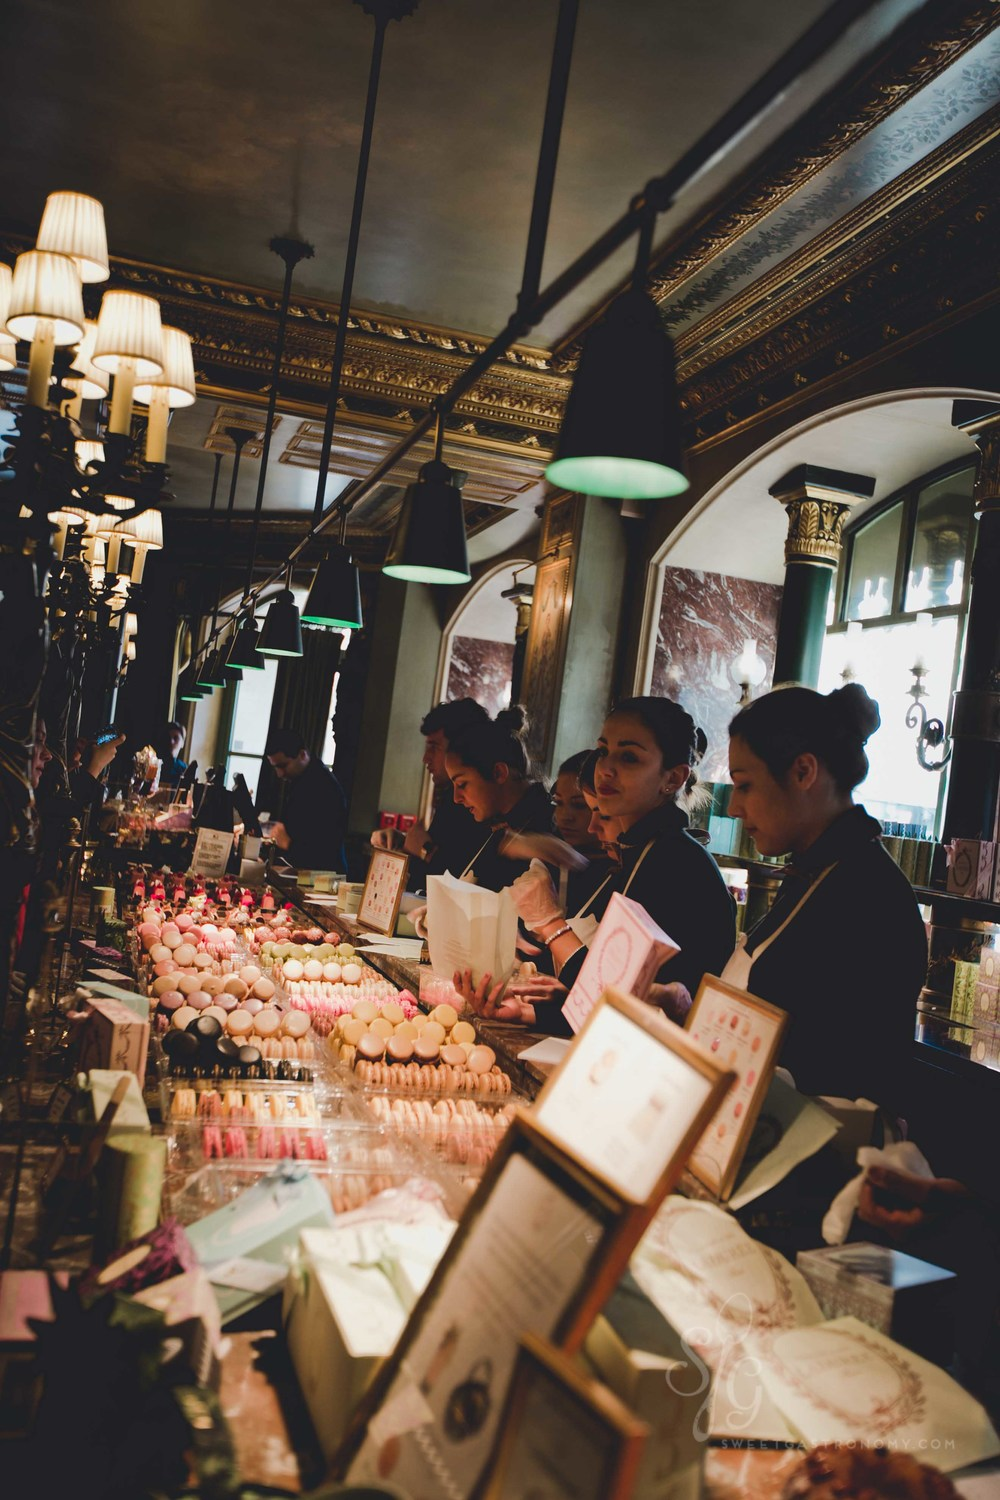 Hustling in the very busy  Ladurée  on Champs - Élysées to get our sweet treats.